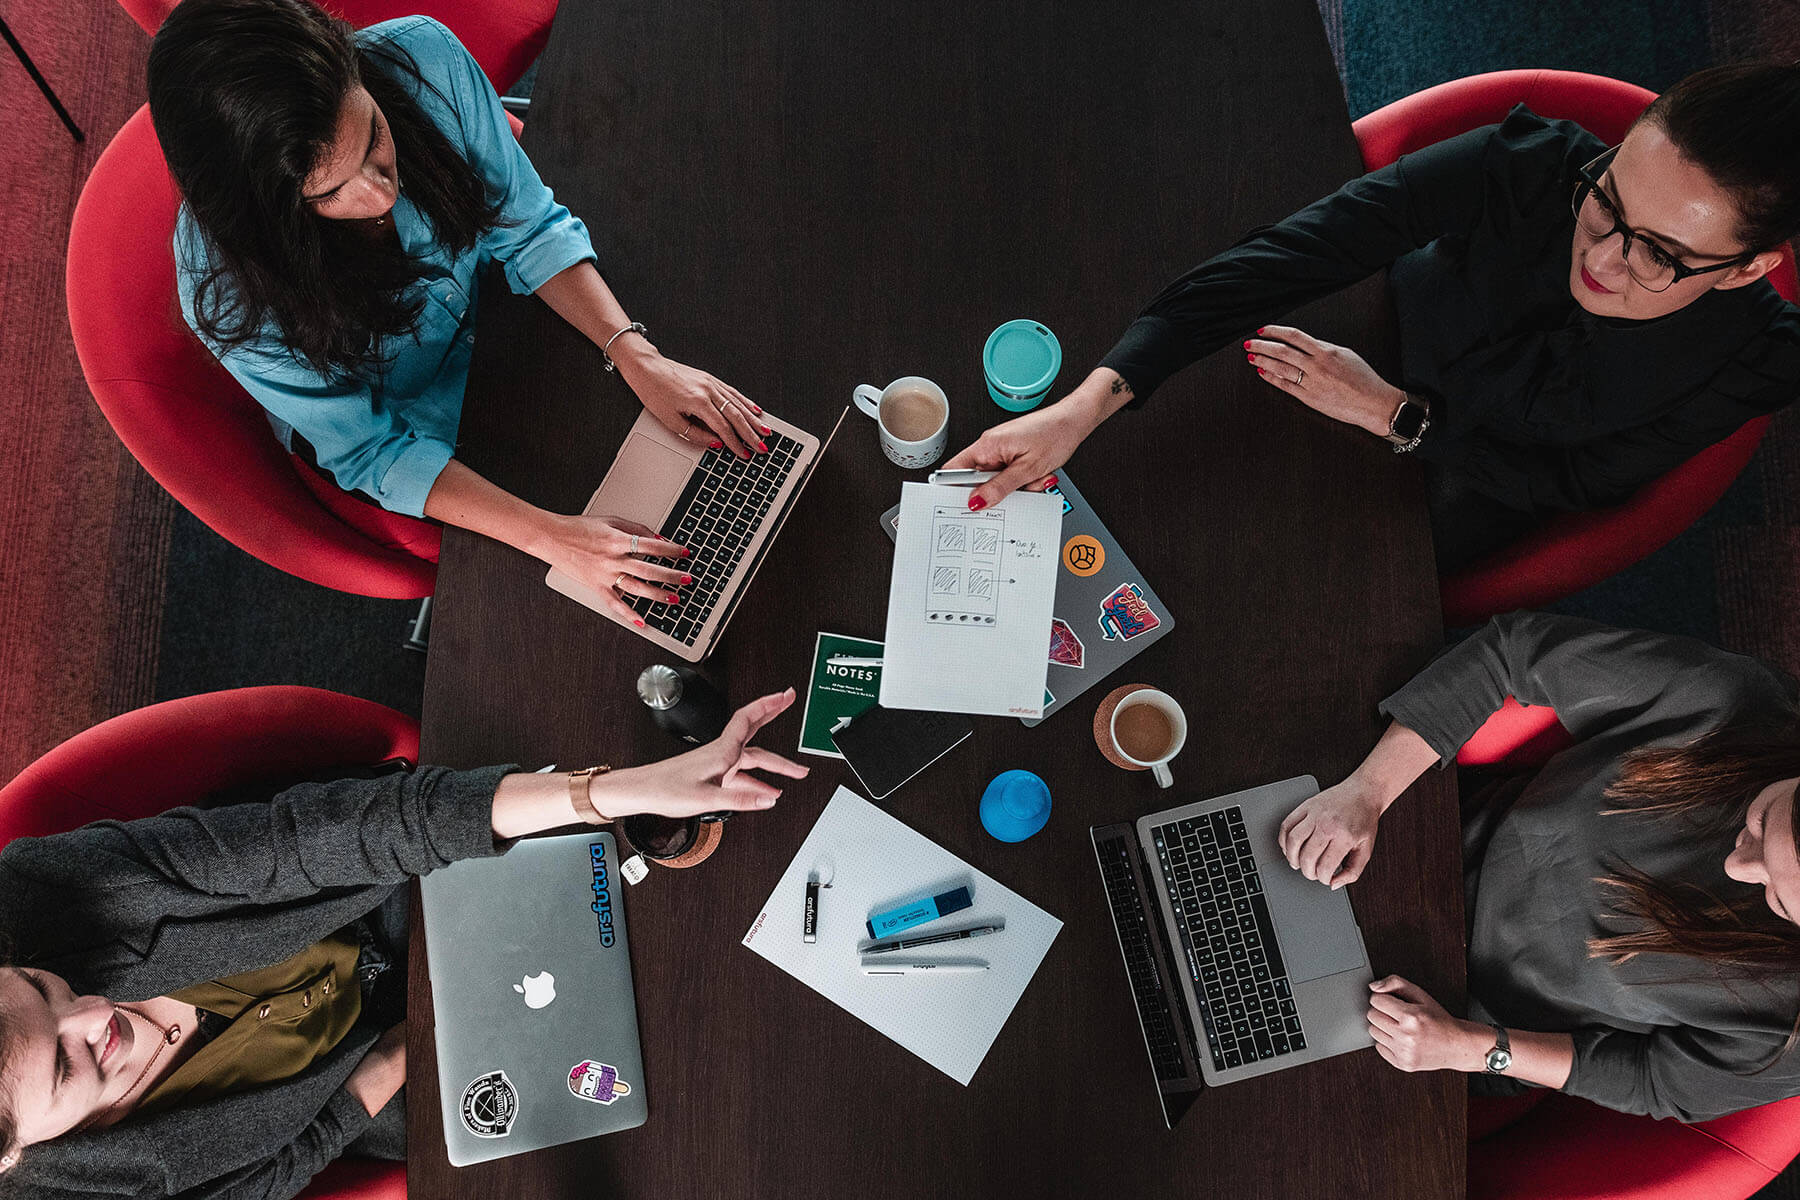 Image showing a few people sitting around a conference table.